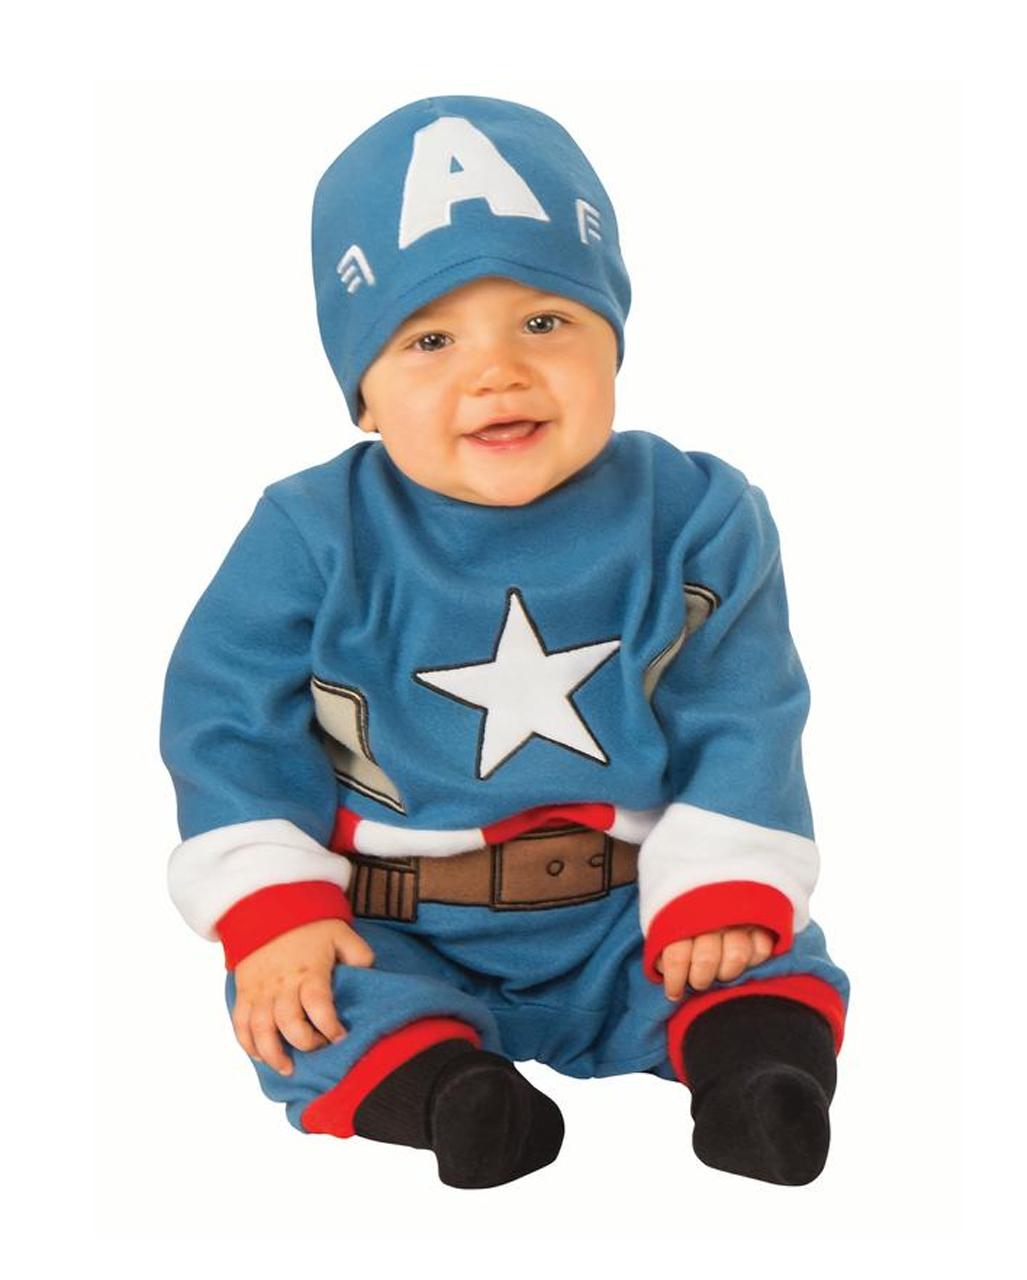 Captain America Baby Costume Buy Cheap Horror Shop Com New marvel captain marvel cos superwomen surprise suits woman cosplay tights halloween costume. captain america baby costume